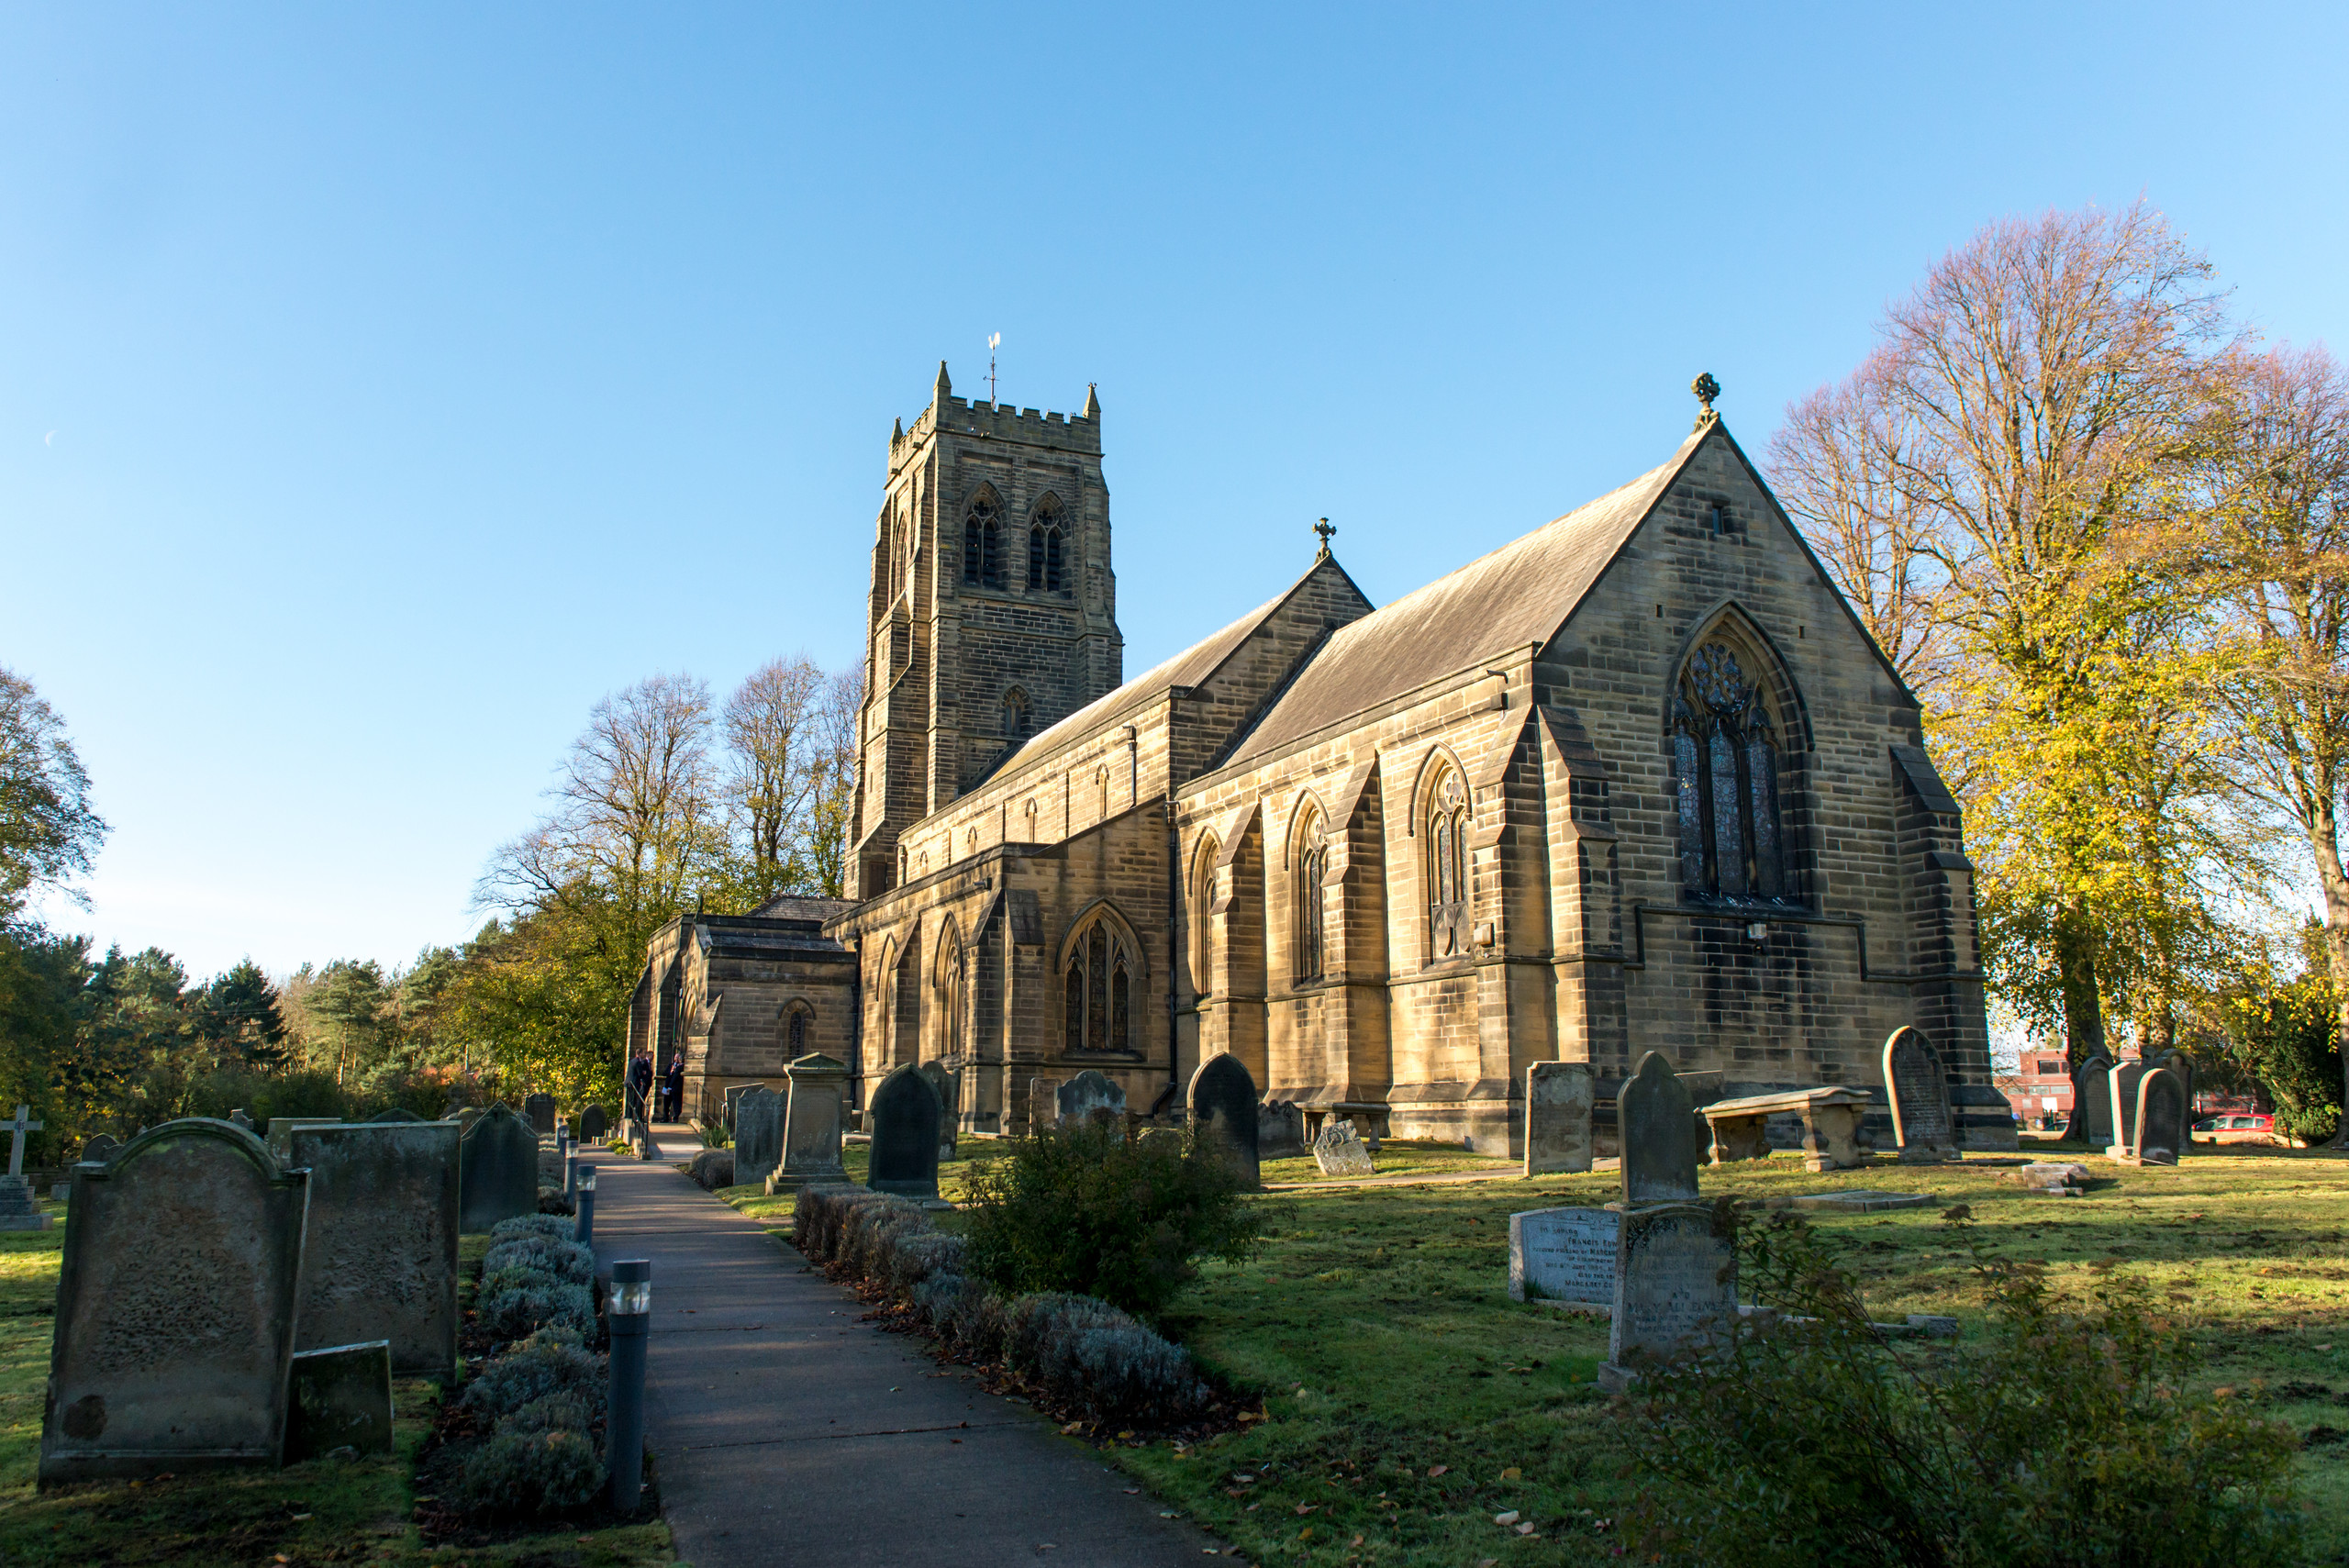 Wedding day ceremony at Saint Mary / St Mary's Church in Stannington, Northumberland